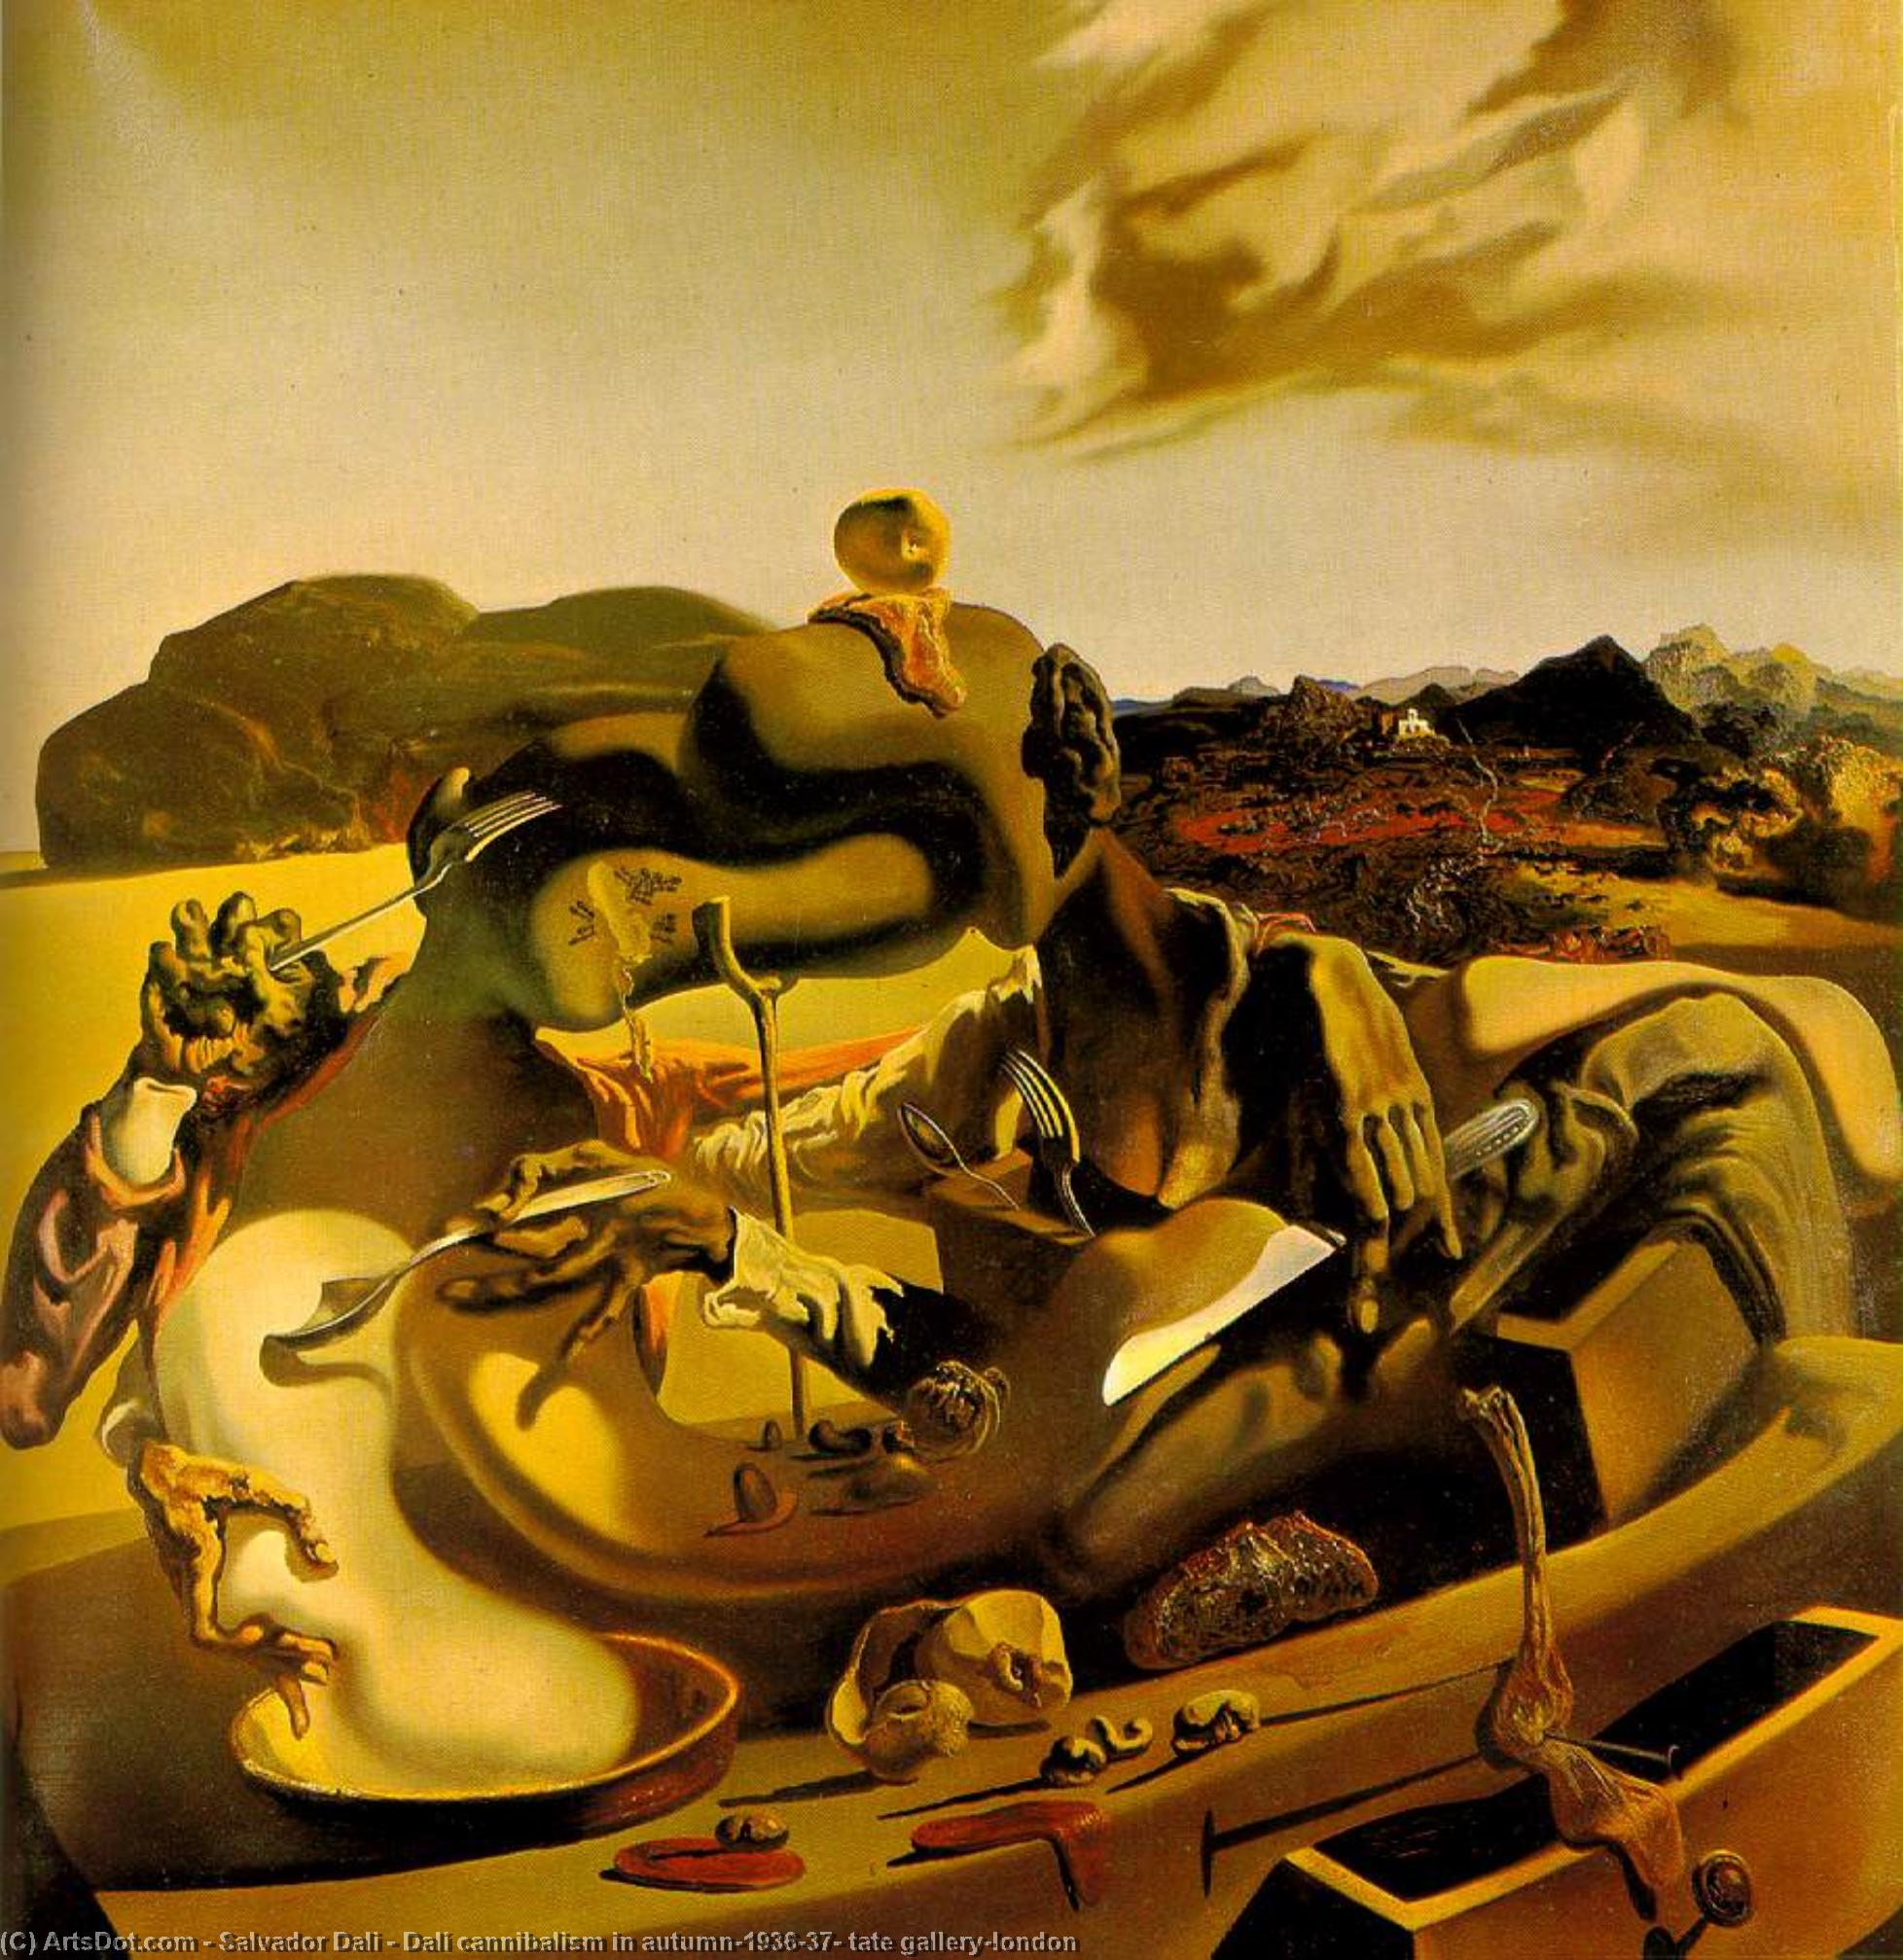 Wikioo.org - The Encyclopedia of Fine Arts - Painting, Artwork by Salvador Dali - Dalí cannibalism in autumn,1936-37, tate gallery,london